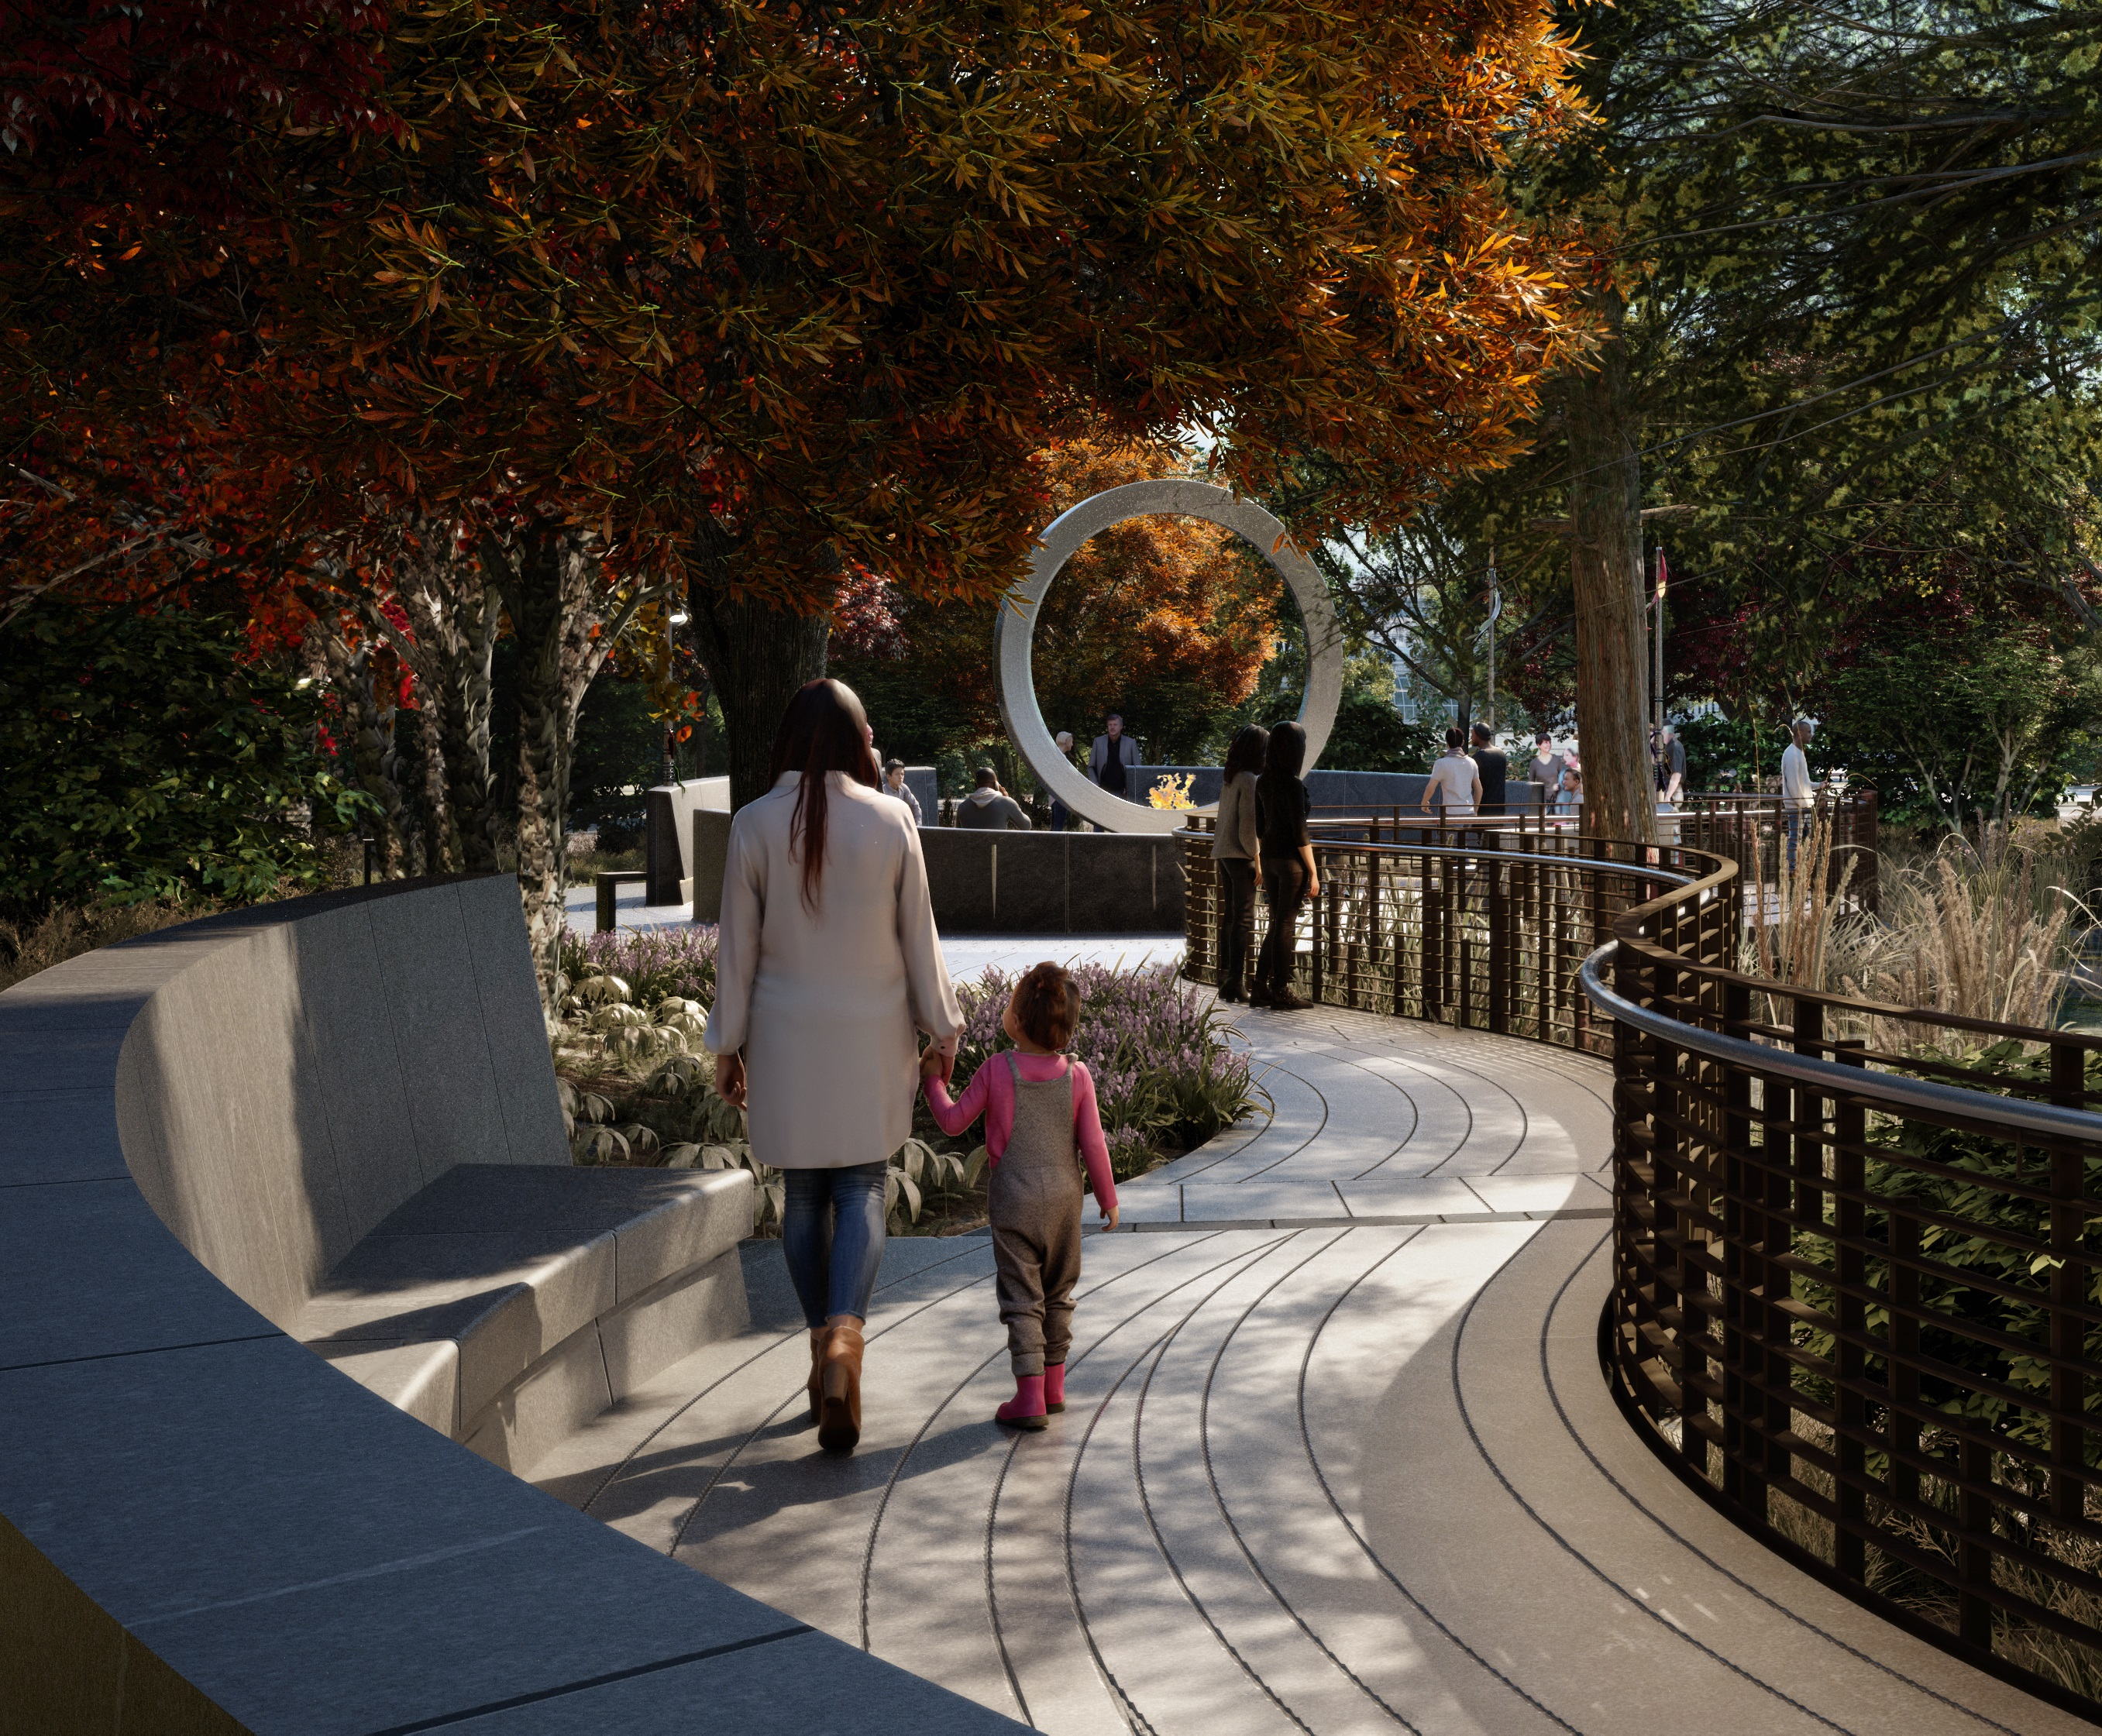 Image of National Native American Veterans Memorial rendering, view from entrace pathway.